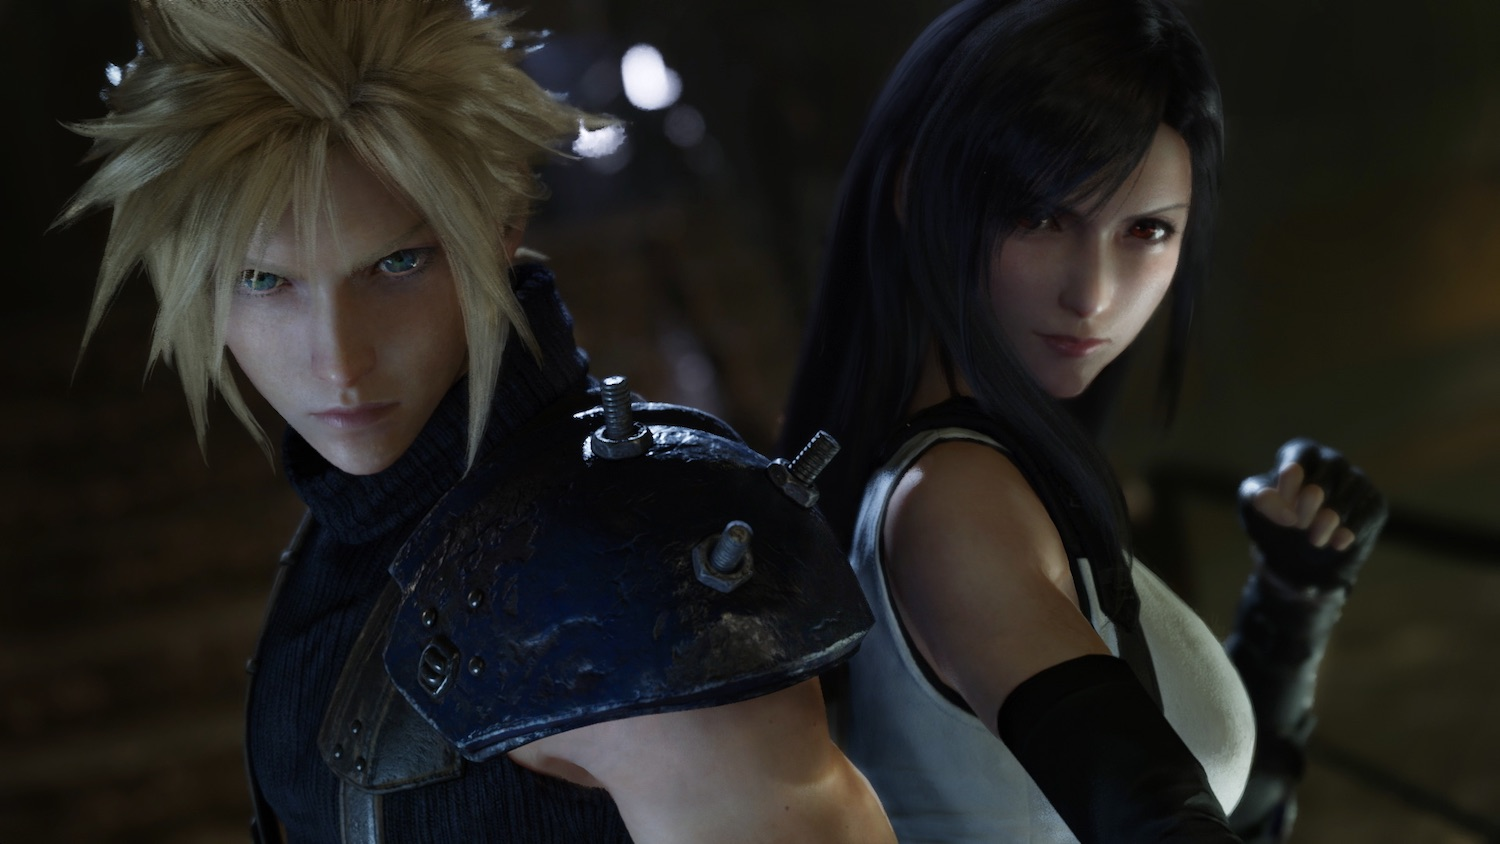 Final Fantasy VII Remake demo is available for download now